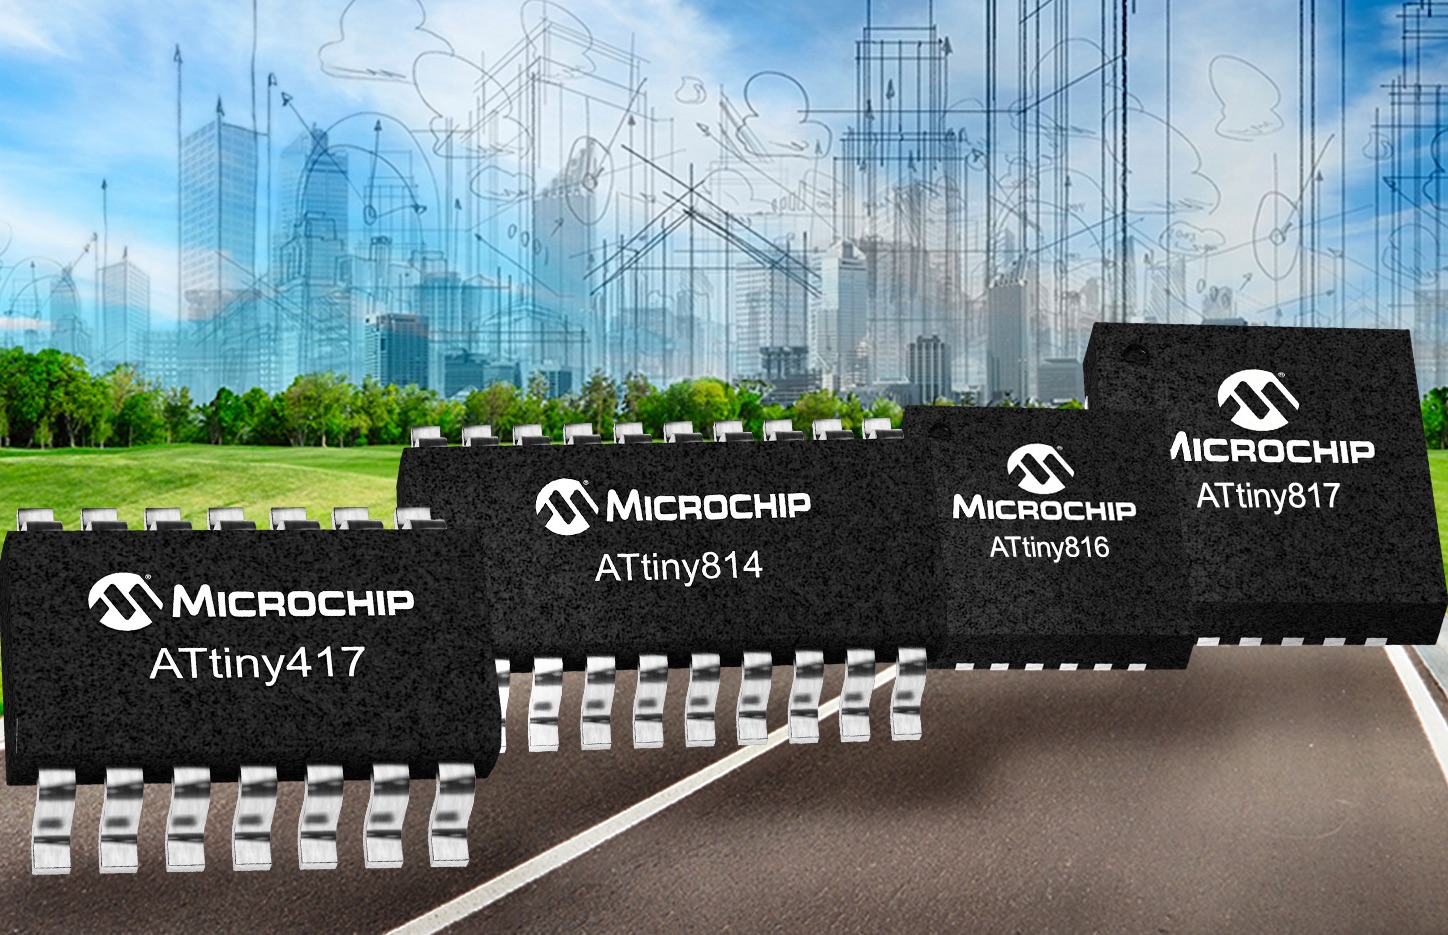 Electronica Microchip Unites Pic And Avr With 8 Bit